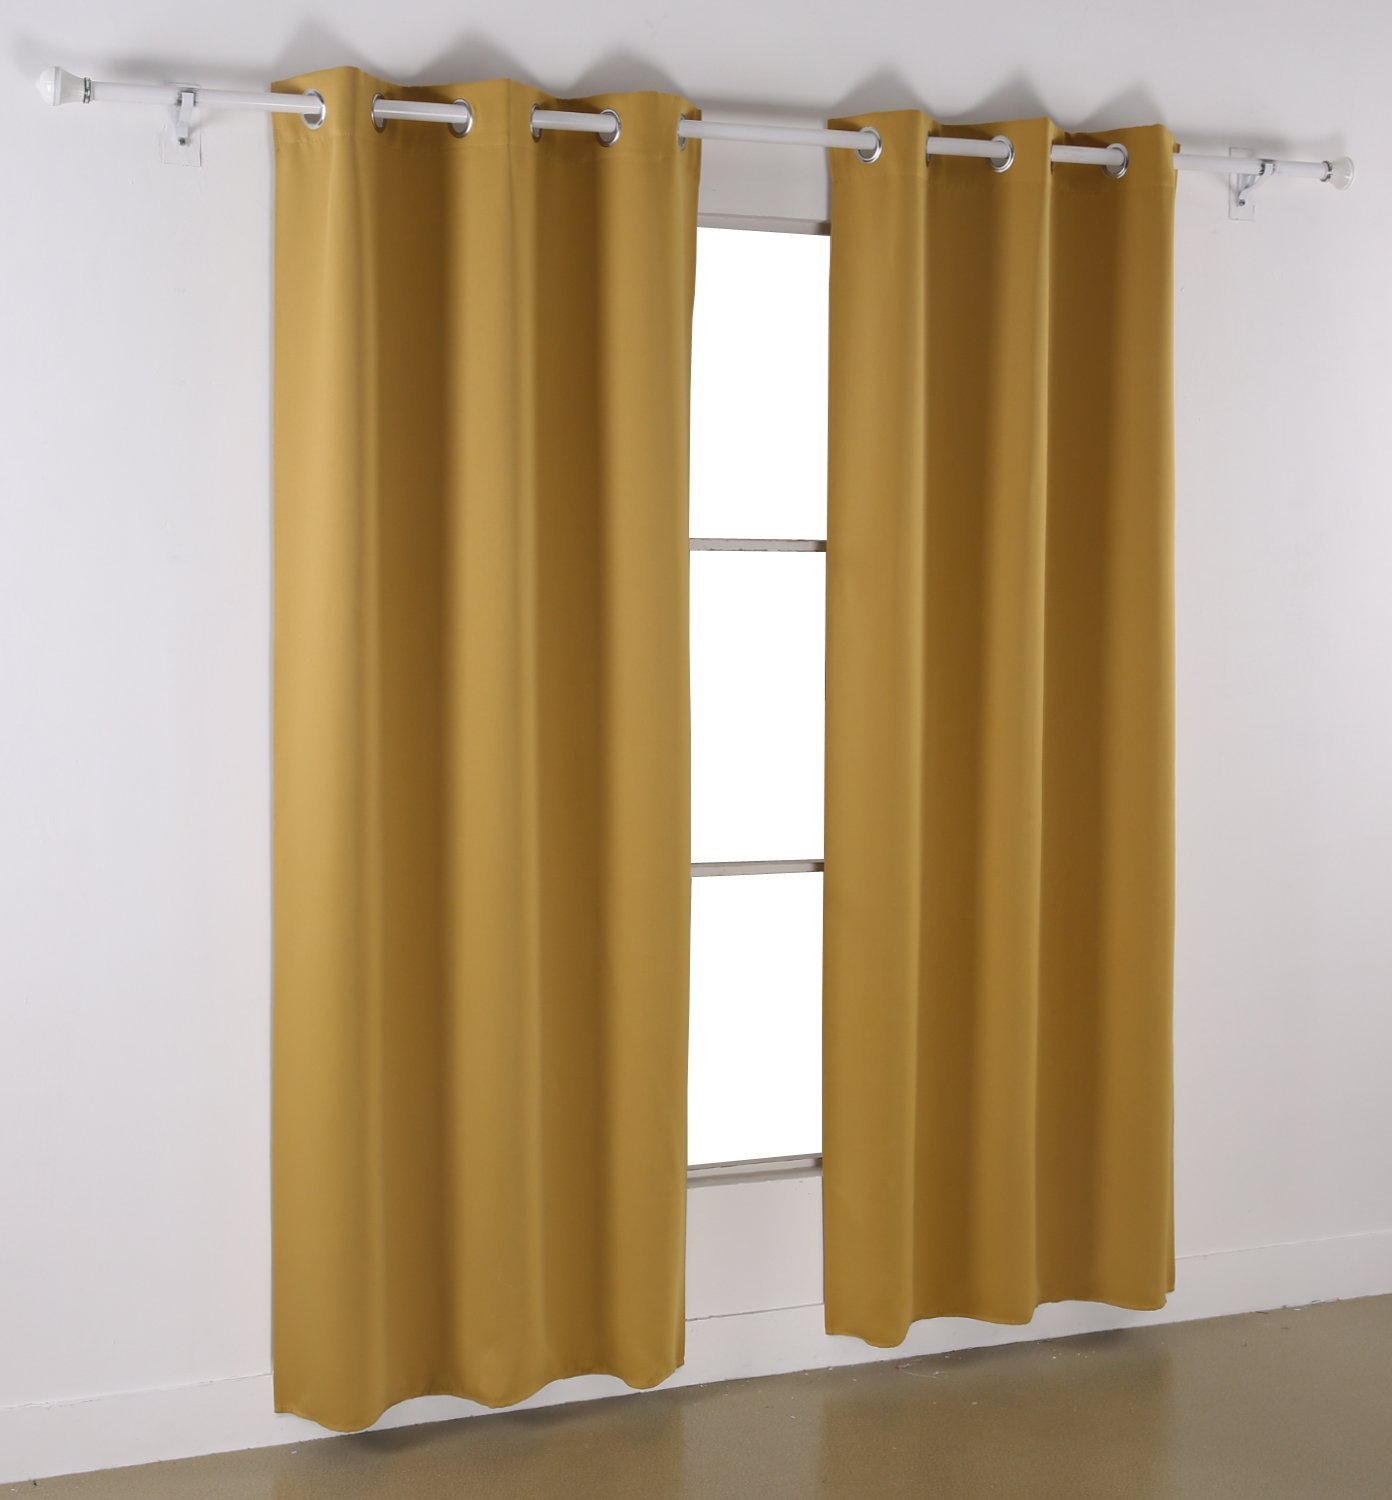 Deconovo Room Darkening Thermal Insulated Blackout Curtains – Single Panel